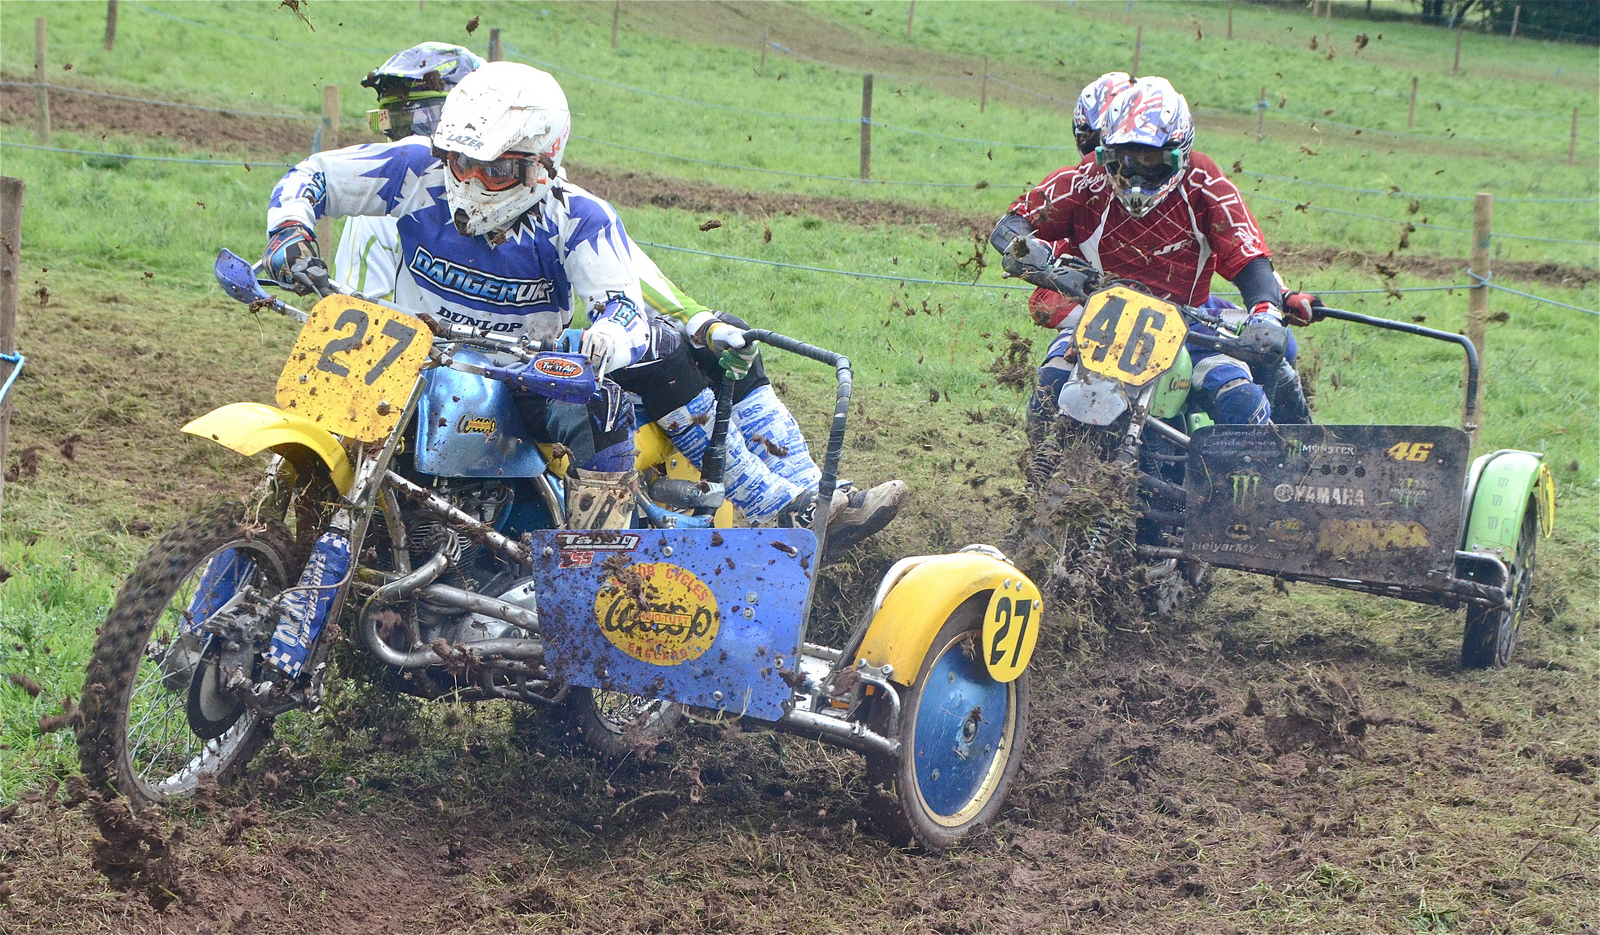 Llanthony Classic Scramble Photos September 2015 classicdirtbikerider.com..22